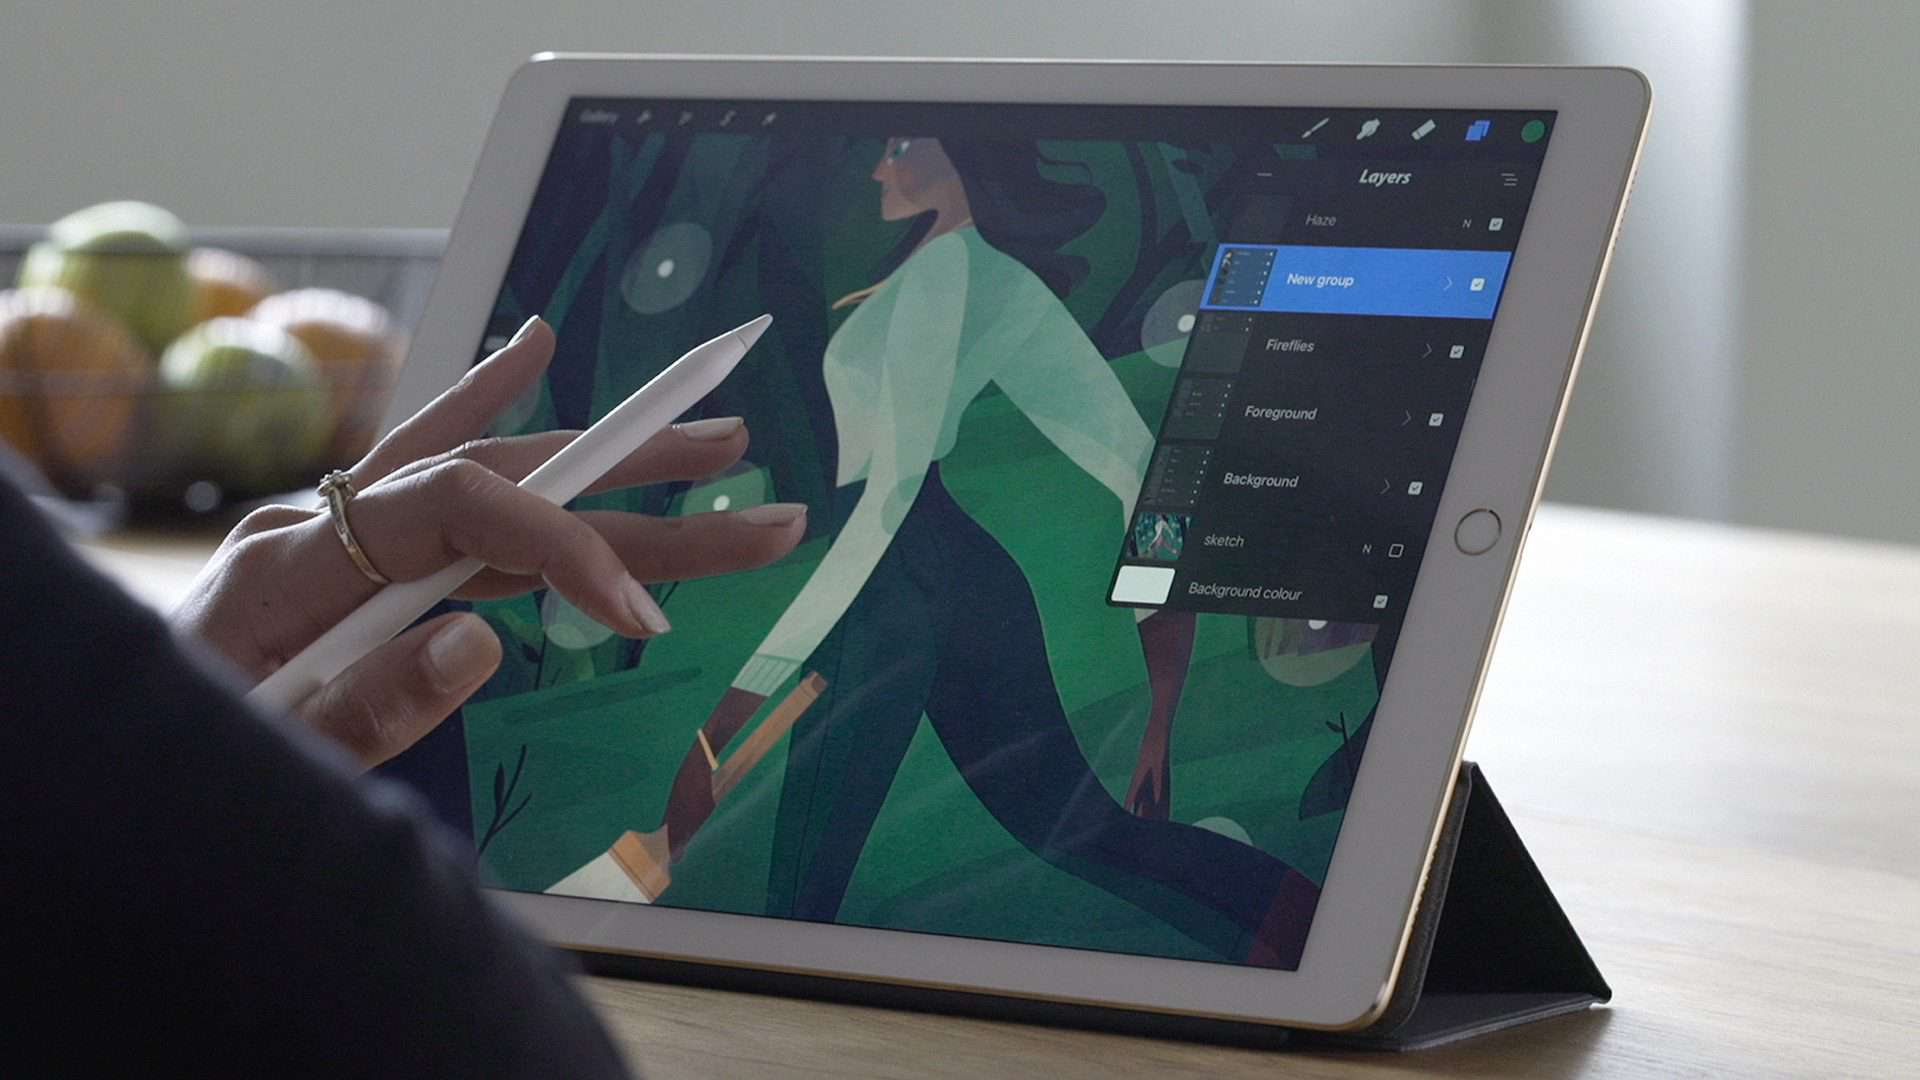 The 5 Best Apps for iPad Pro Pencil